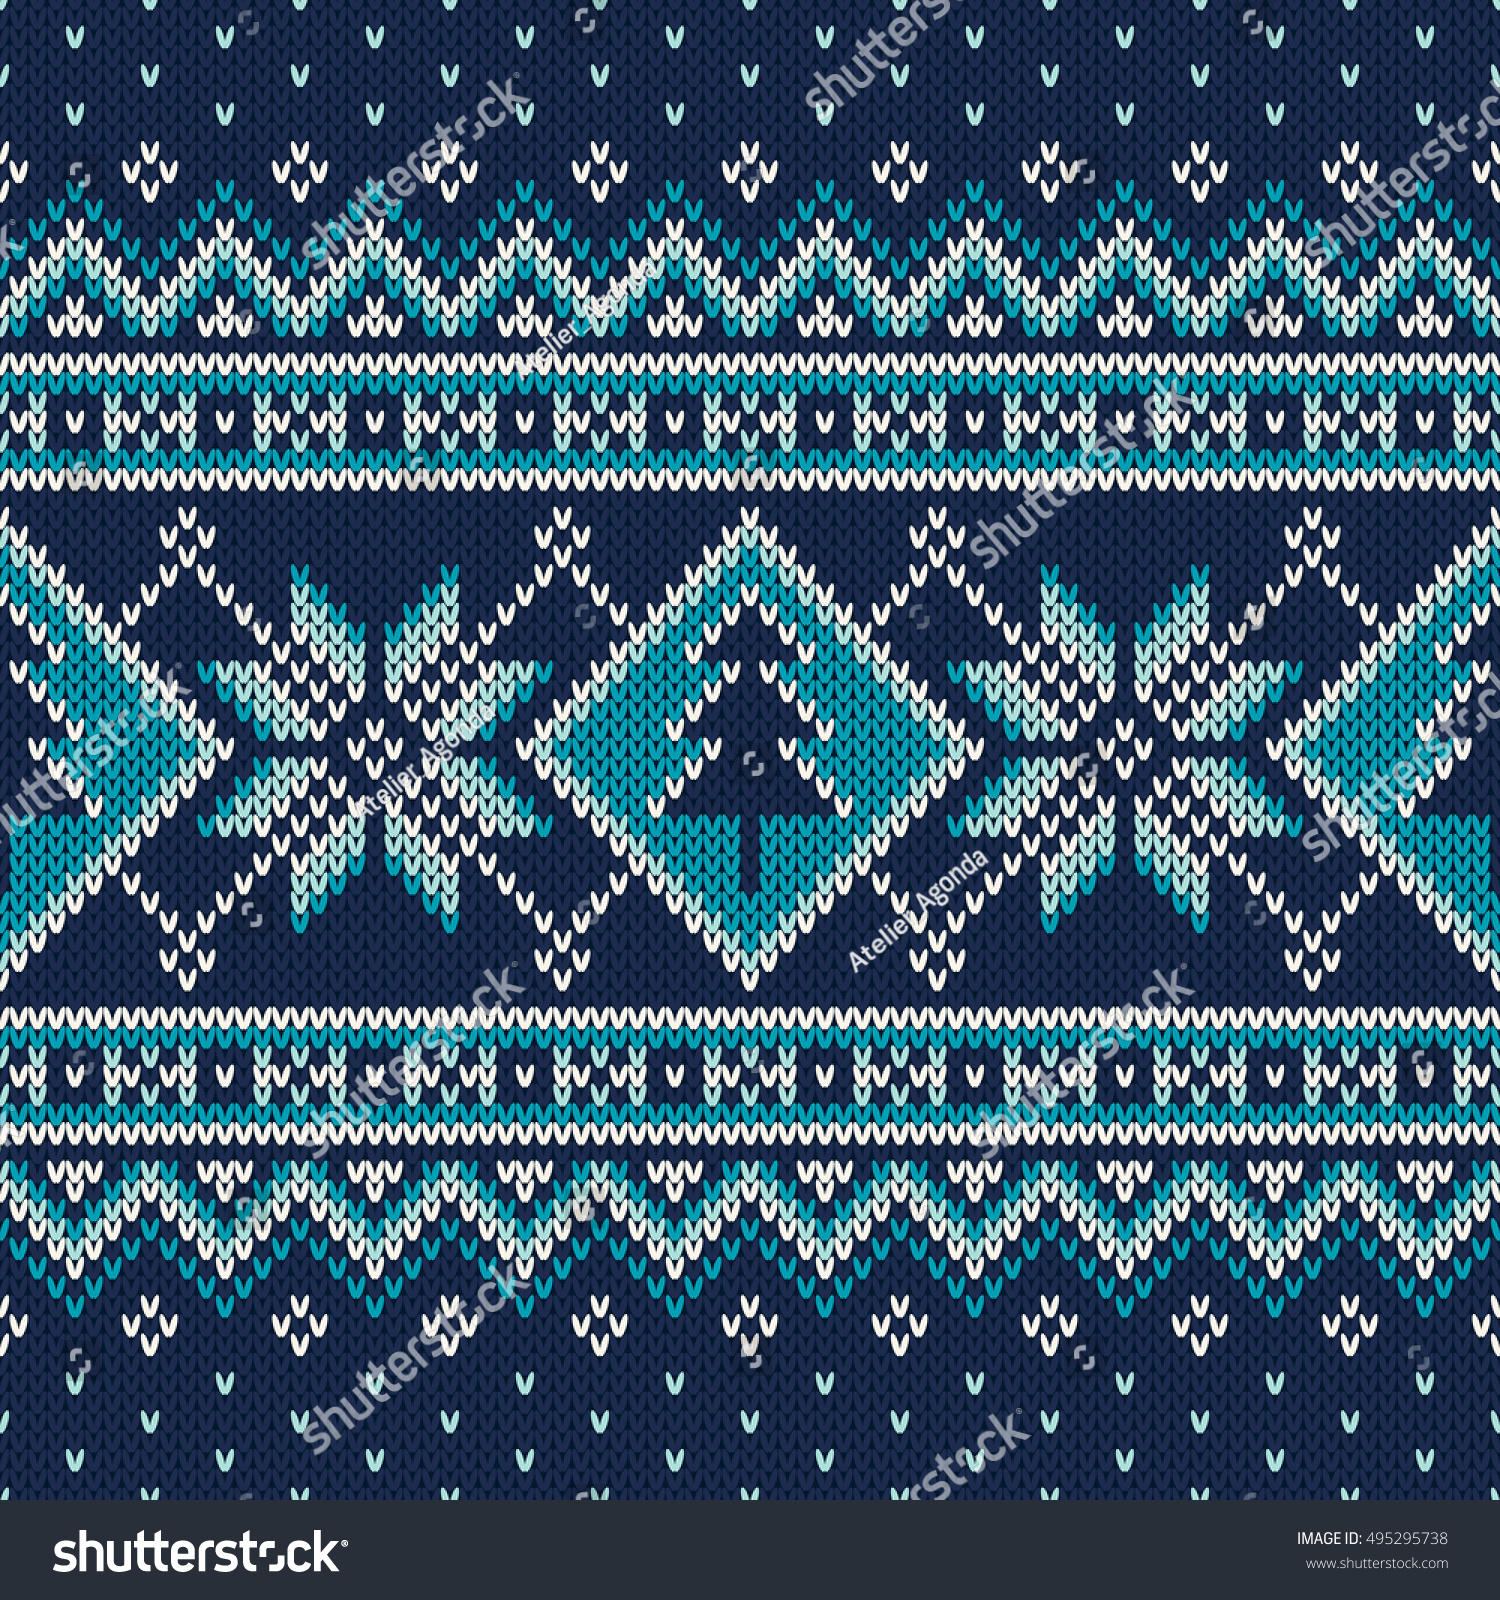 Winter Holiday Fair Isle Knitted Pattern Stock Vector 495295738 ...